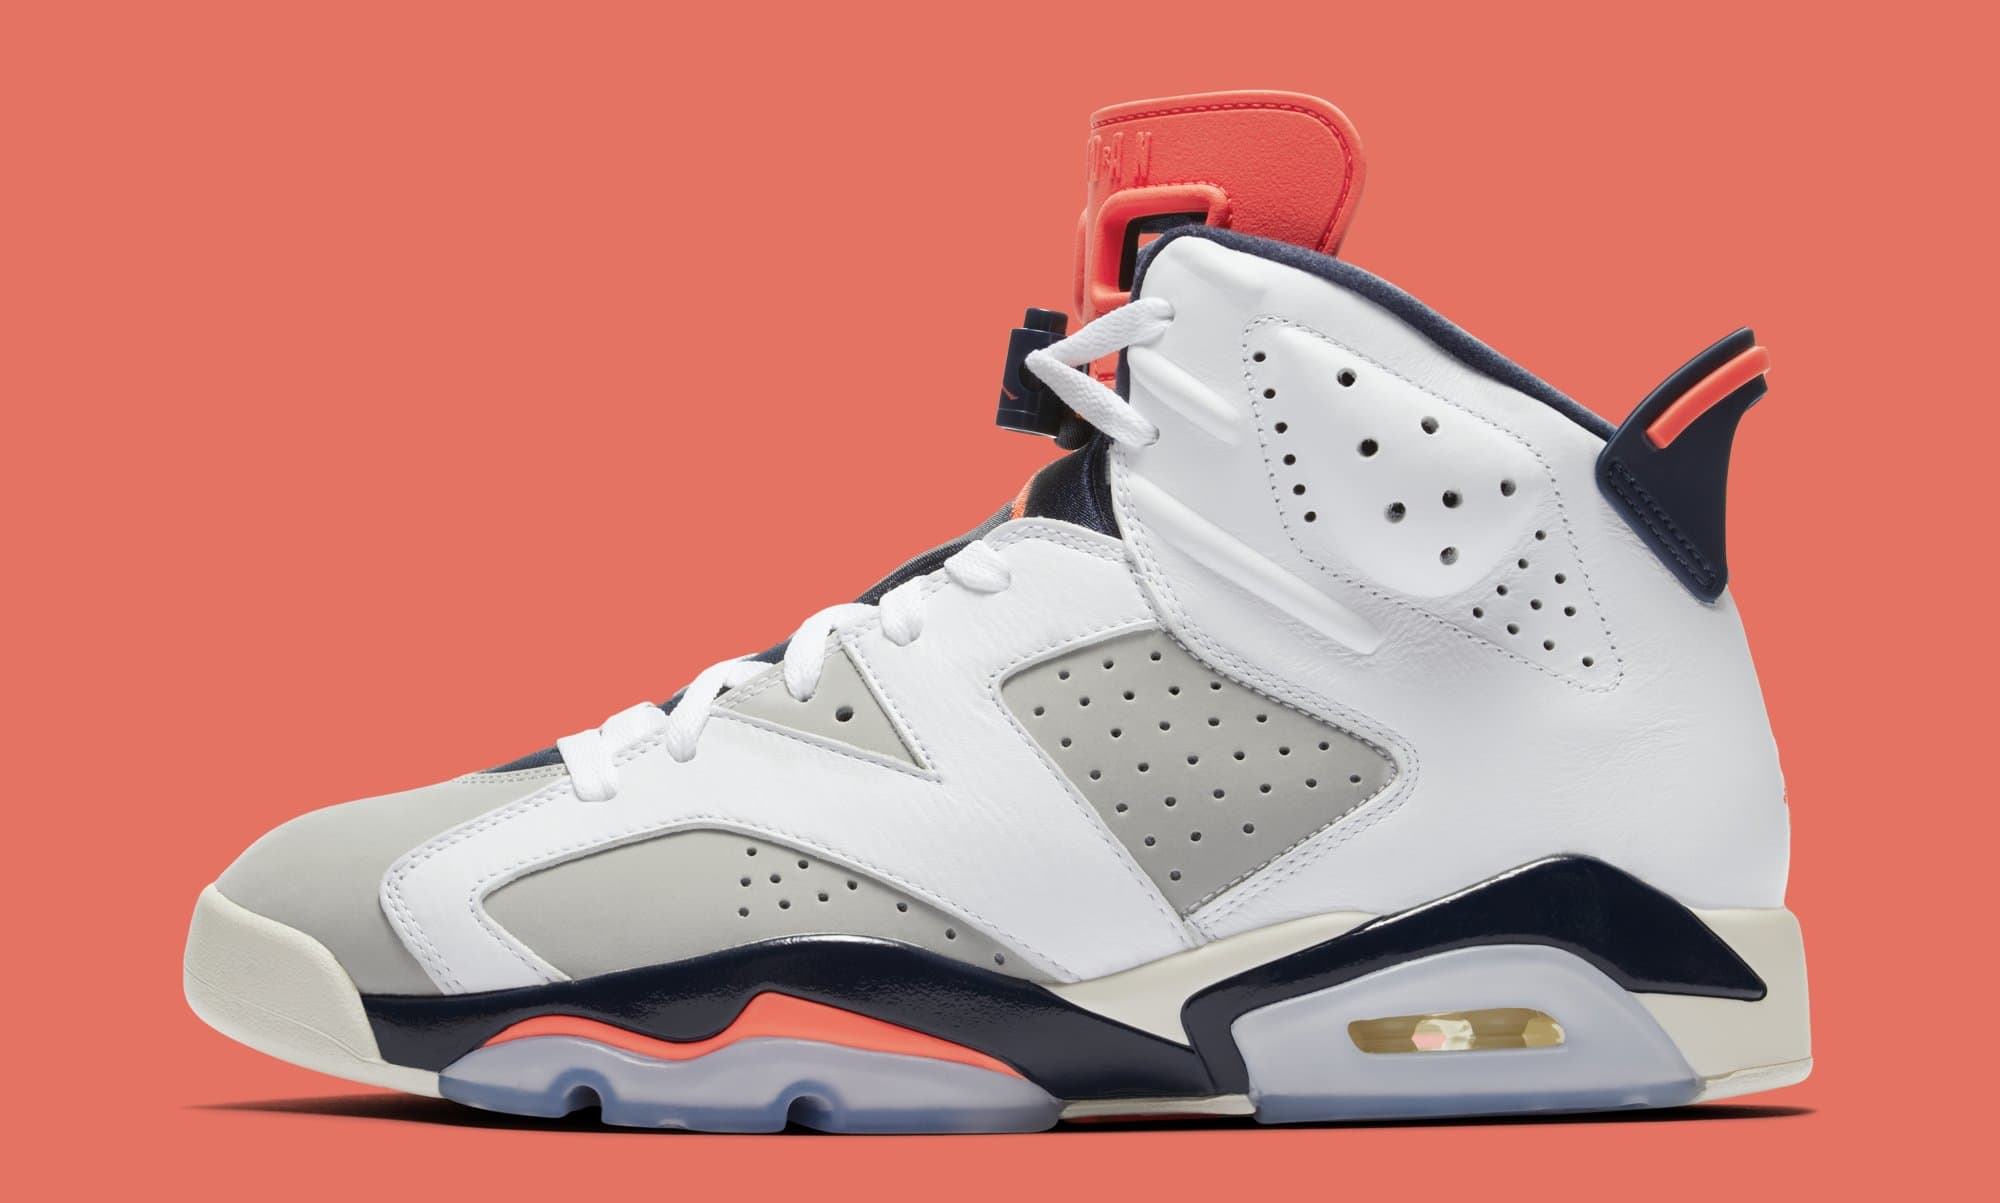 innovative design bd1e1 65732 ... usa air jordan 6 retro tinker 3536b ffabc usa air jordan 6 retro tinker  3536b ffabc  denmark jordan shoes jordan lx2 gs roy jones jr edition ...